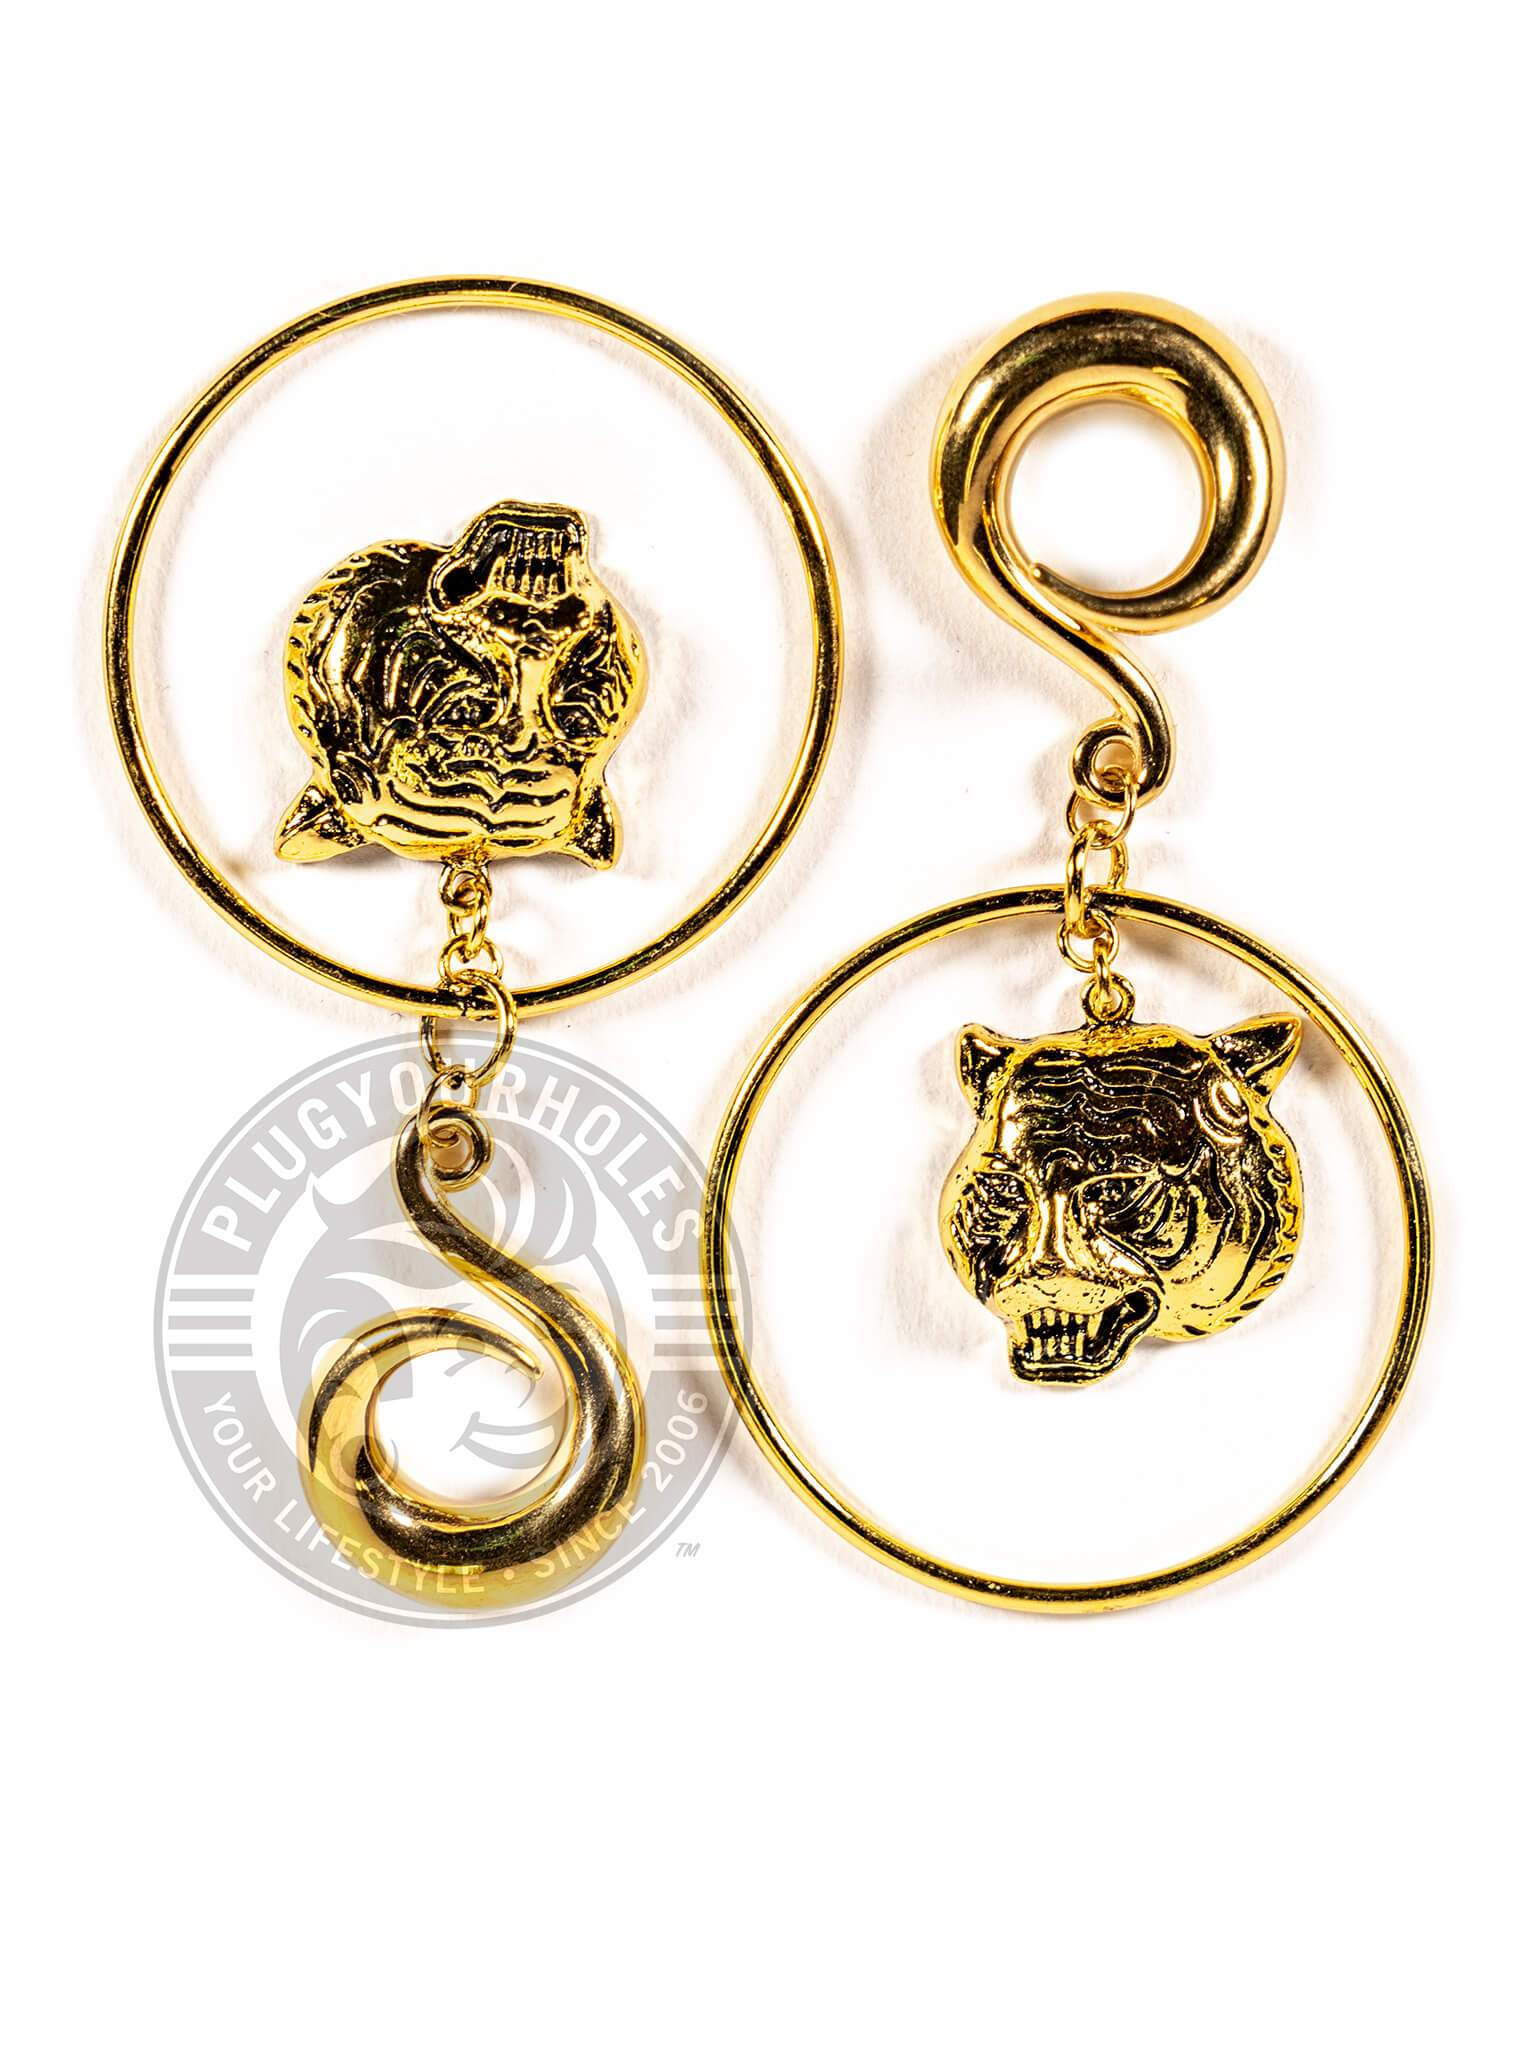 Gold Tiger Hoop Steel Curled Hook Hangers